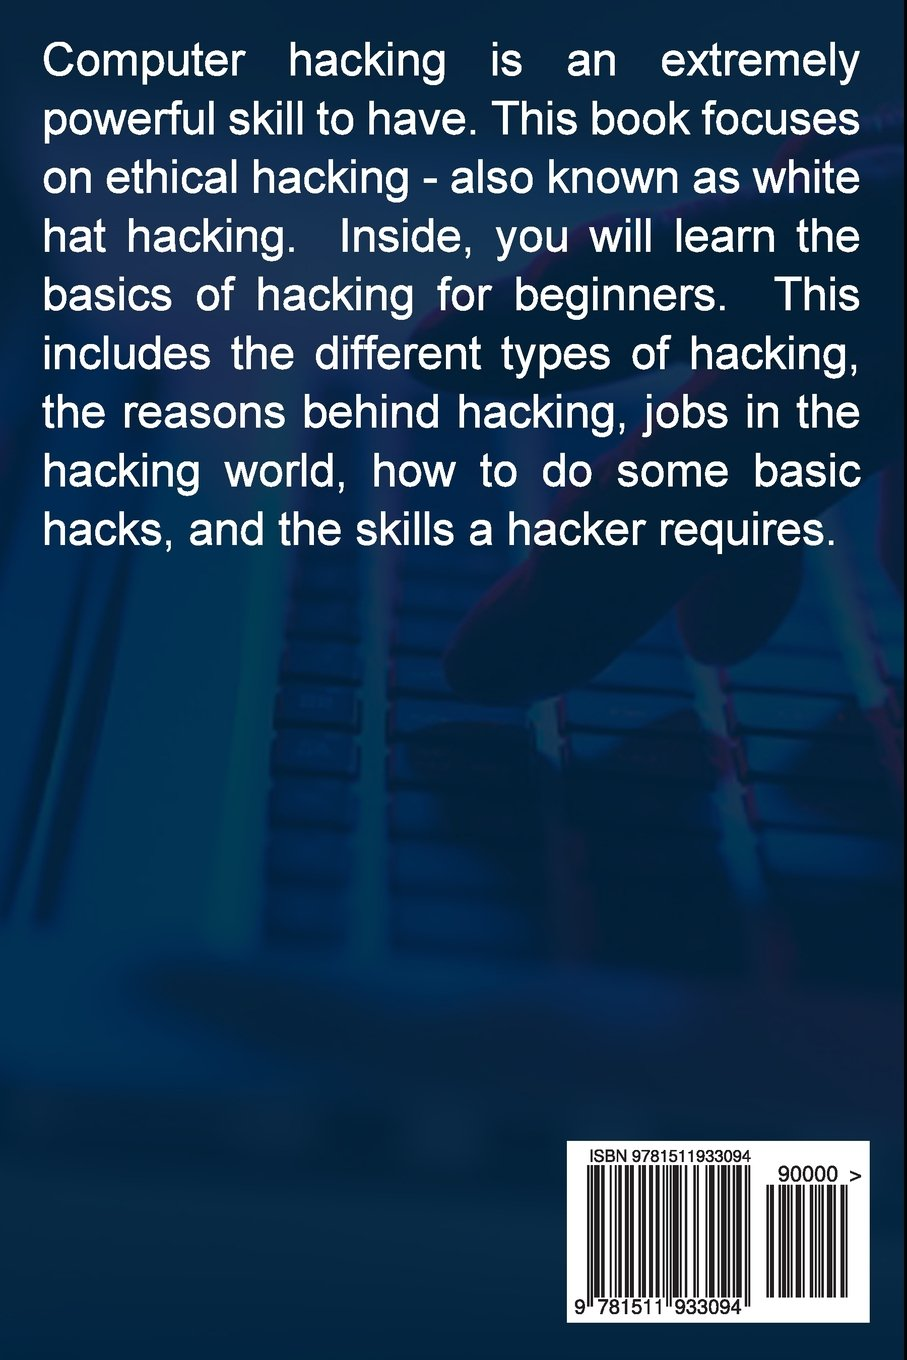 how to become a hacker for beginners